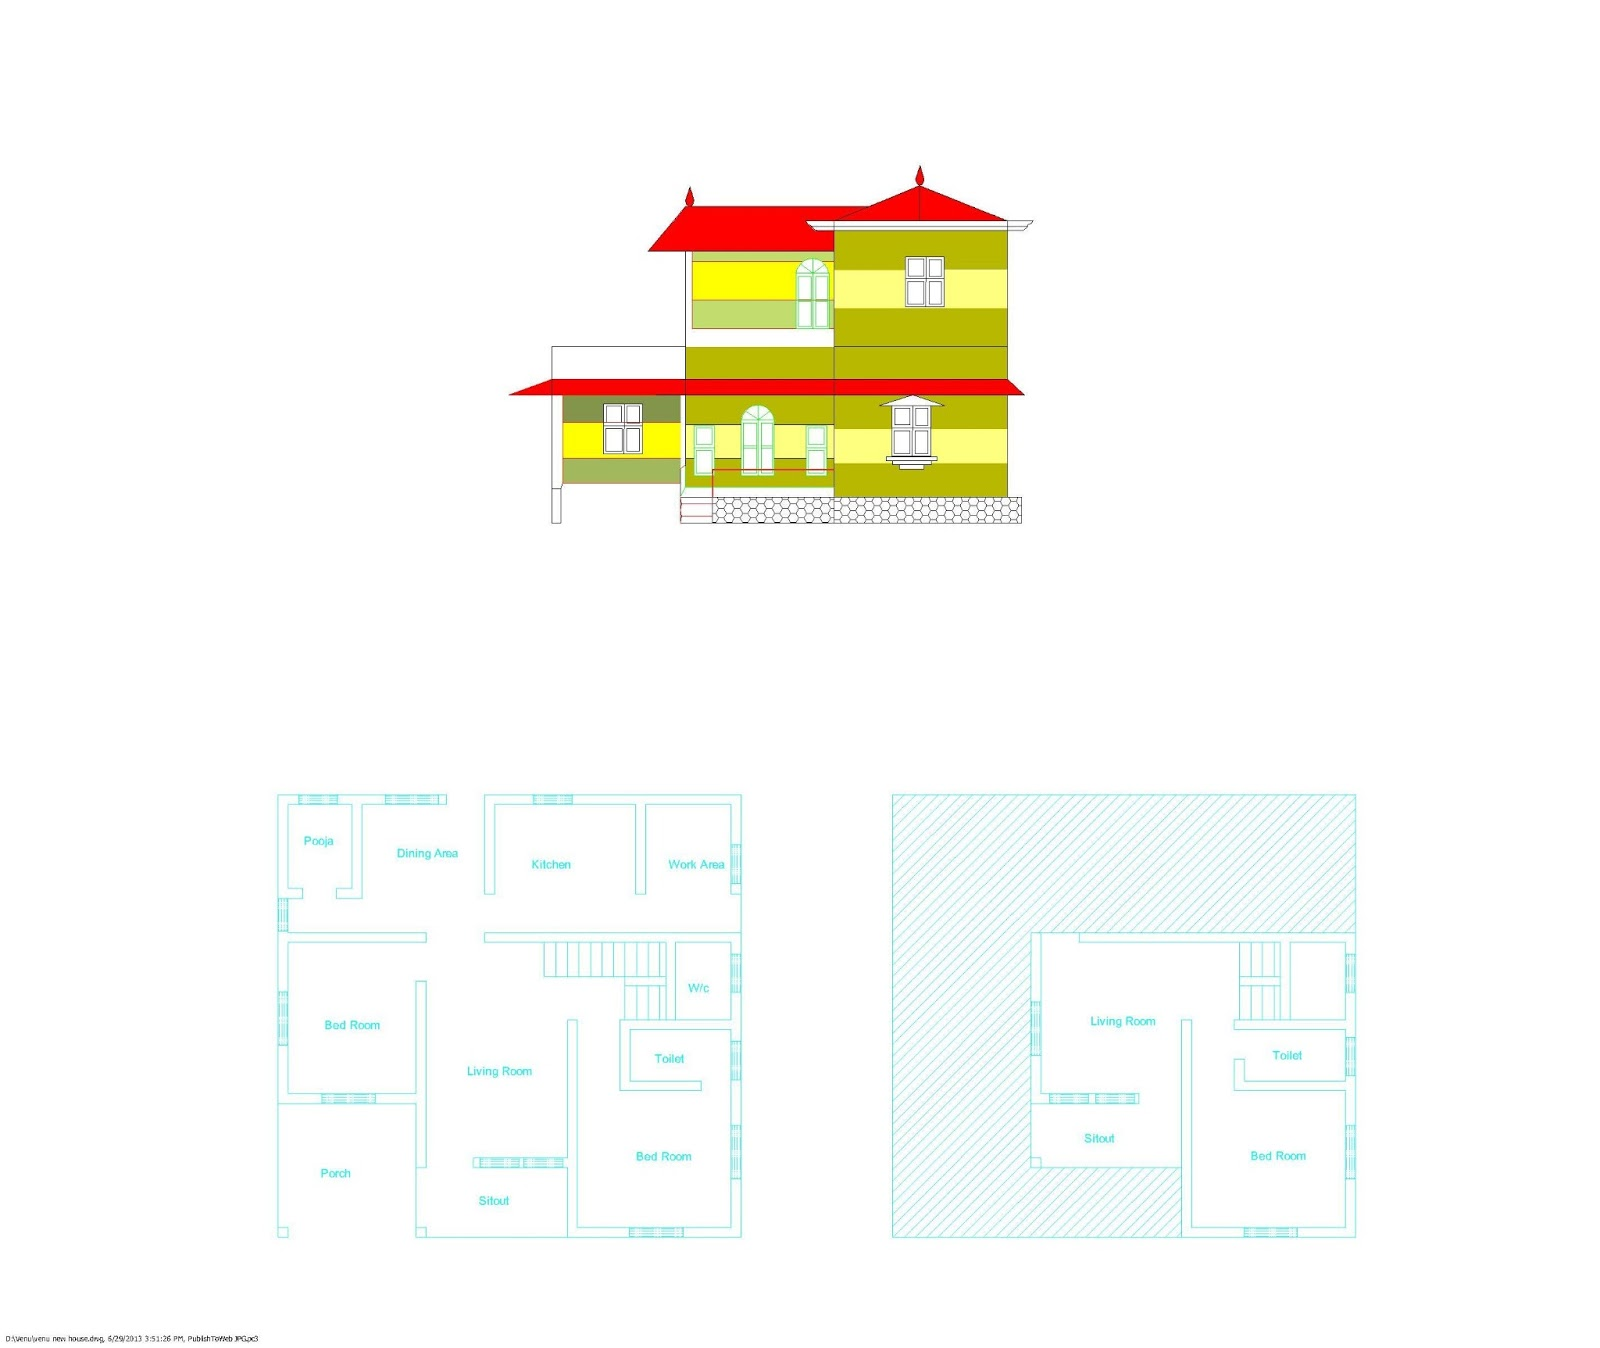 Ente veedu kerala style plan elevation for Veedu plan and elevation